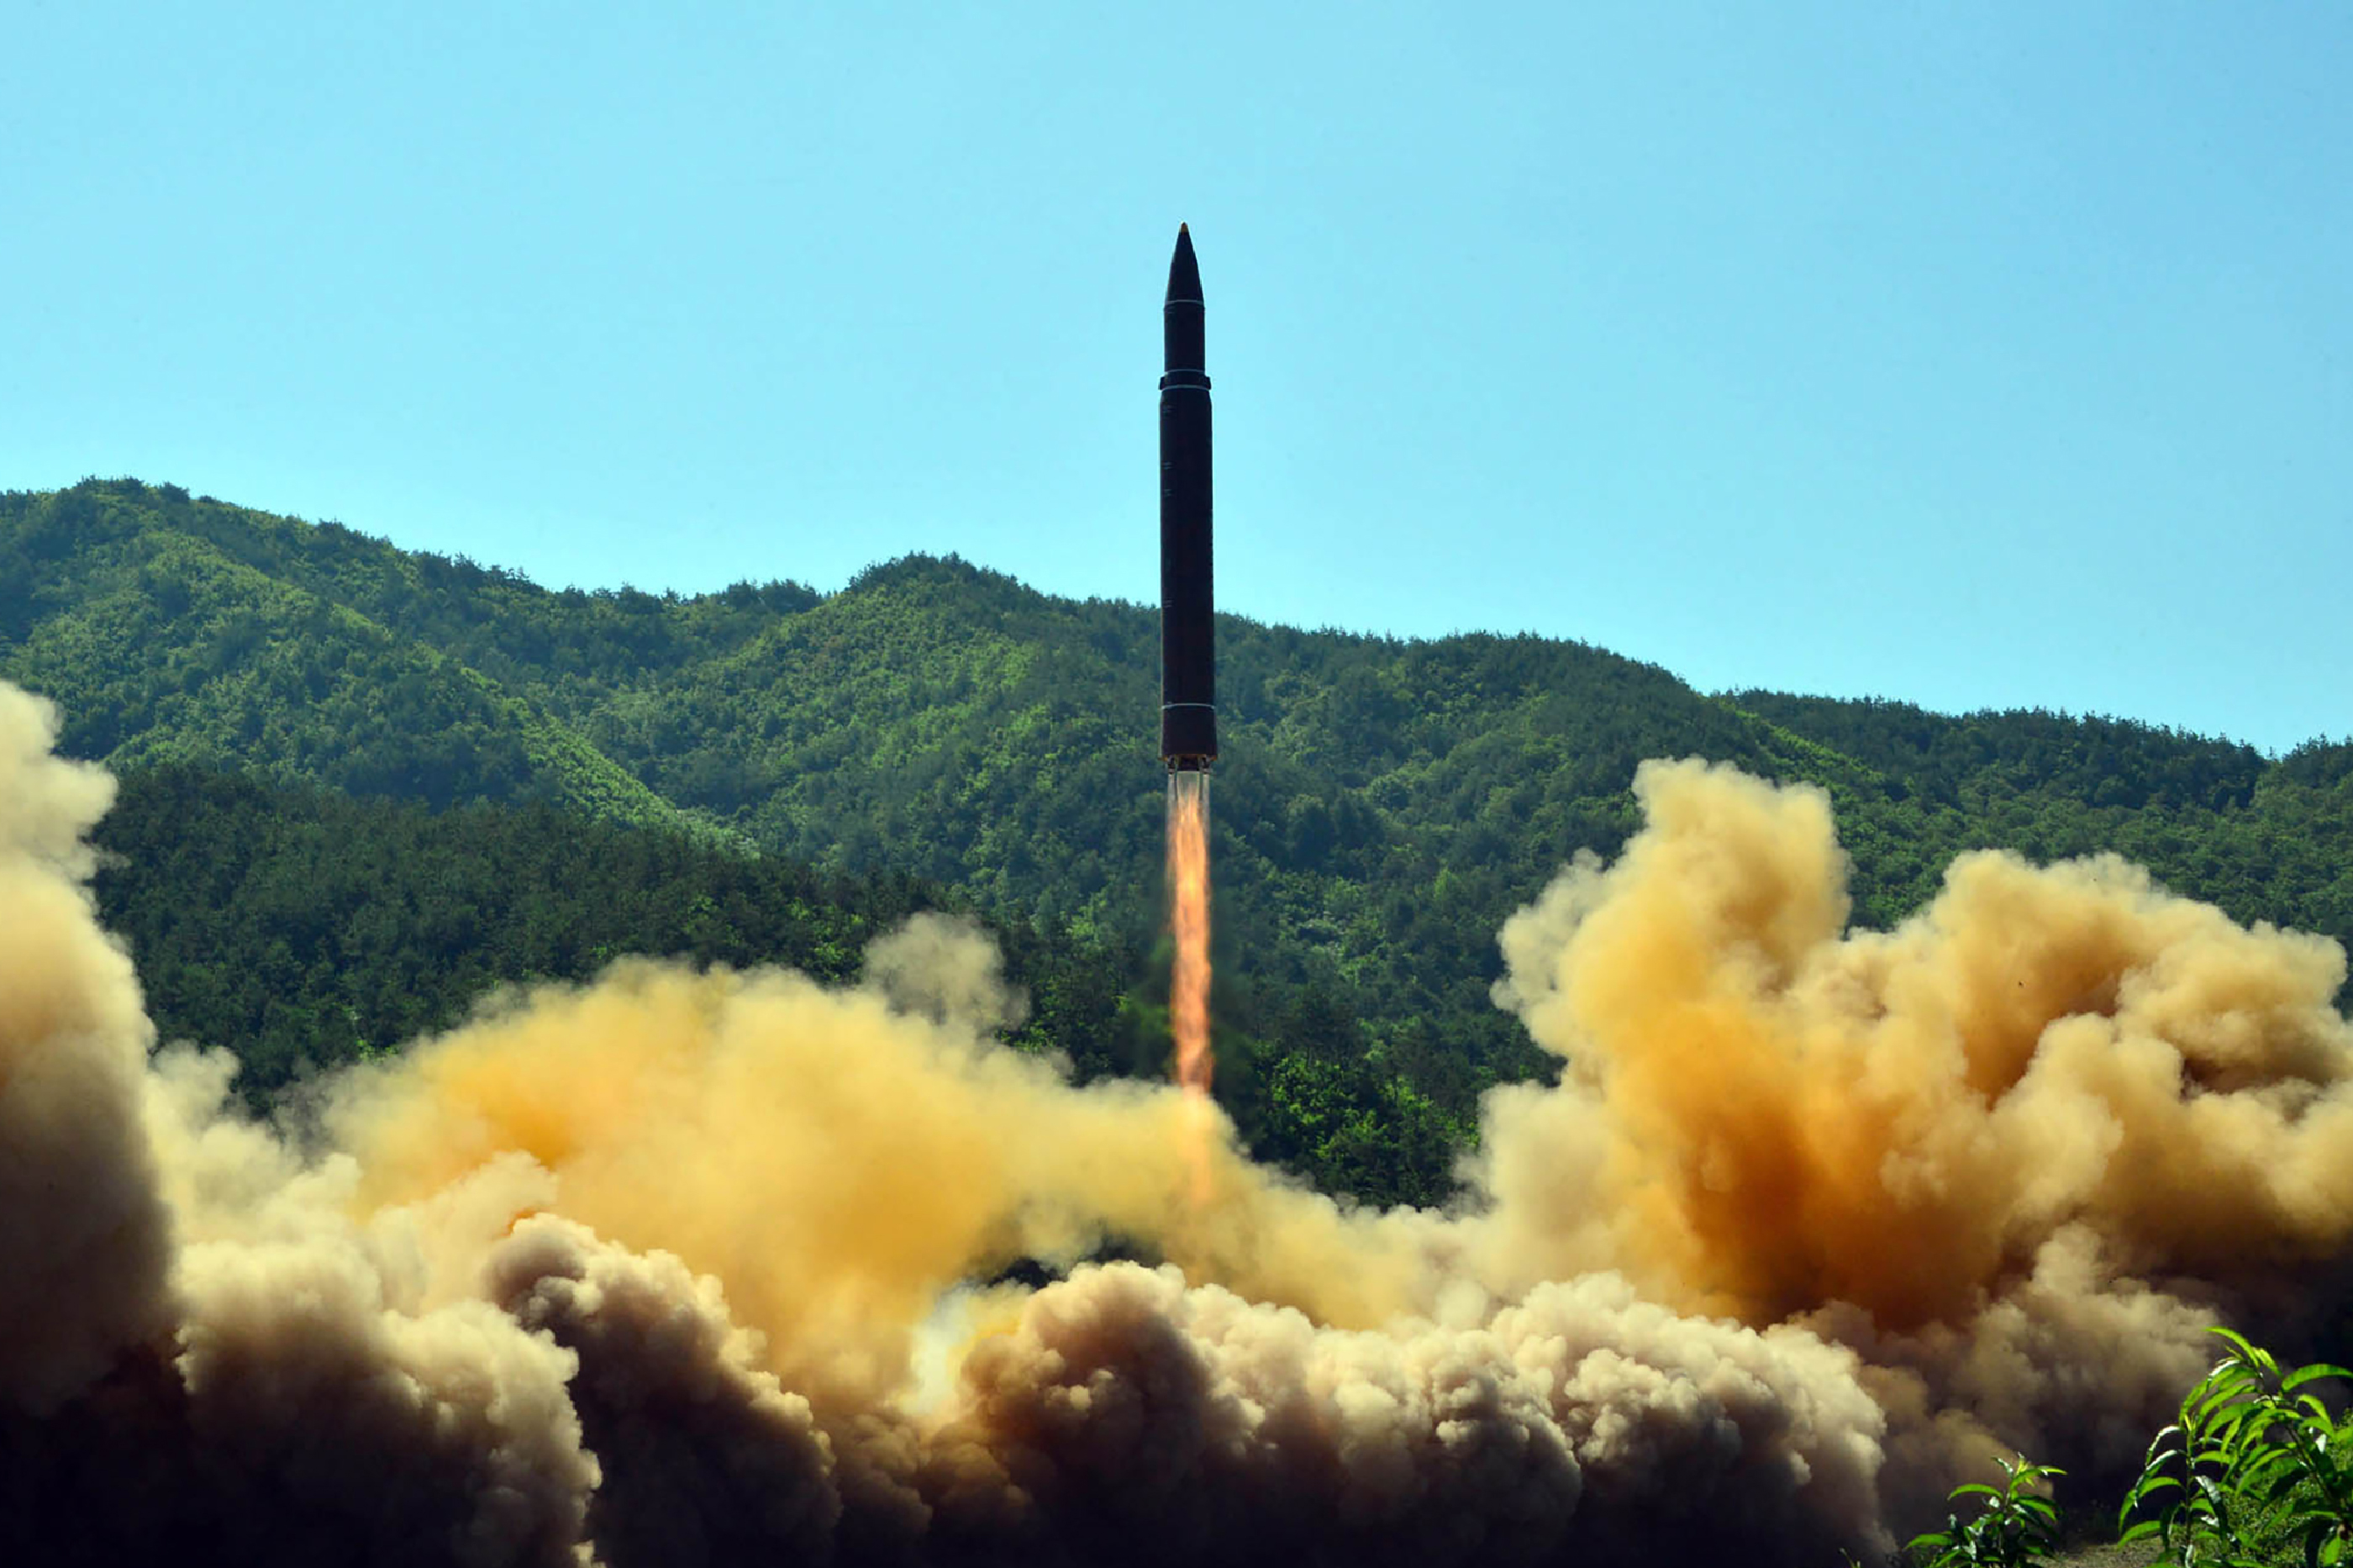 This picture released by North Korea's official Korean Central News Agency (KCNA) on July 5, 2017 shows the successful test-fire of the intercontinental ballistic missile Hwasong-14 at an undisclosed location.